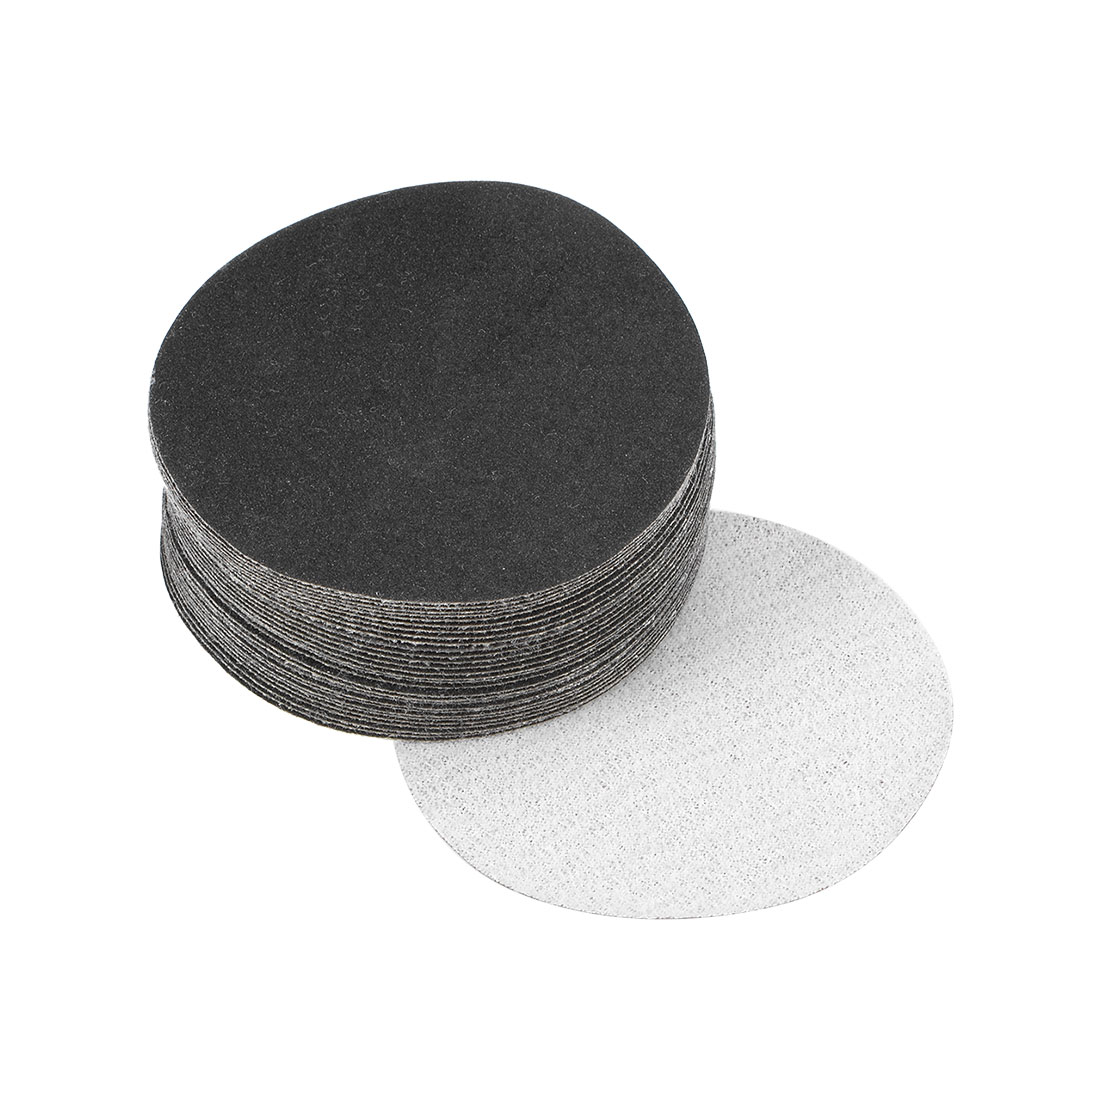 3 inch Wet Dry Discs 240 Grit Hook and Loop Sanding Disc Silicon Carbide 30pcs